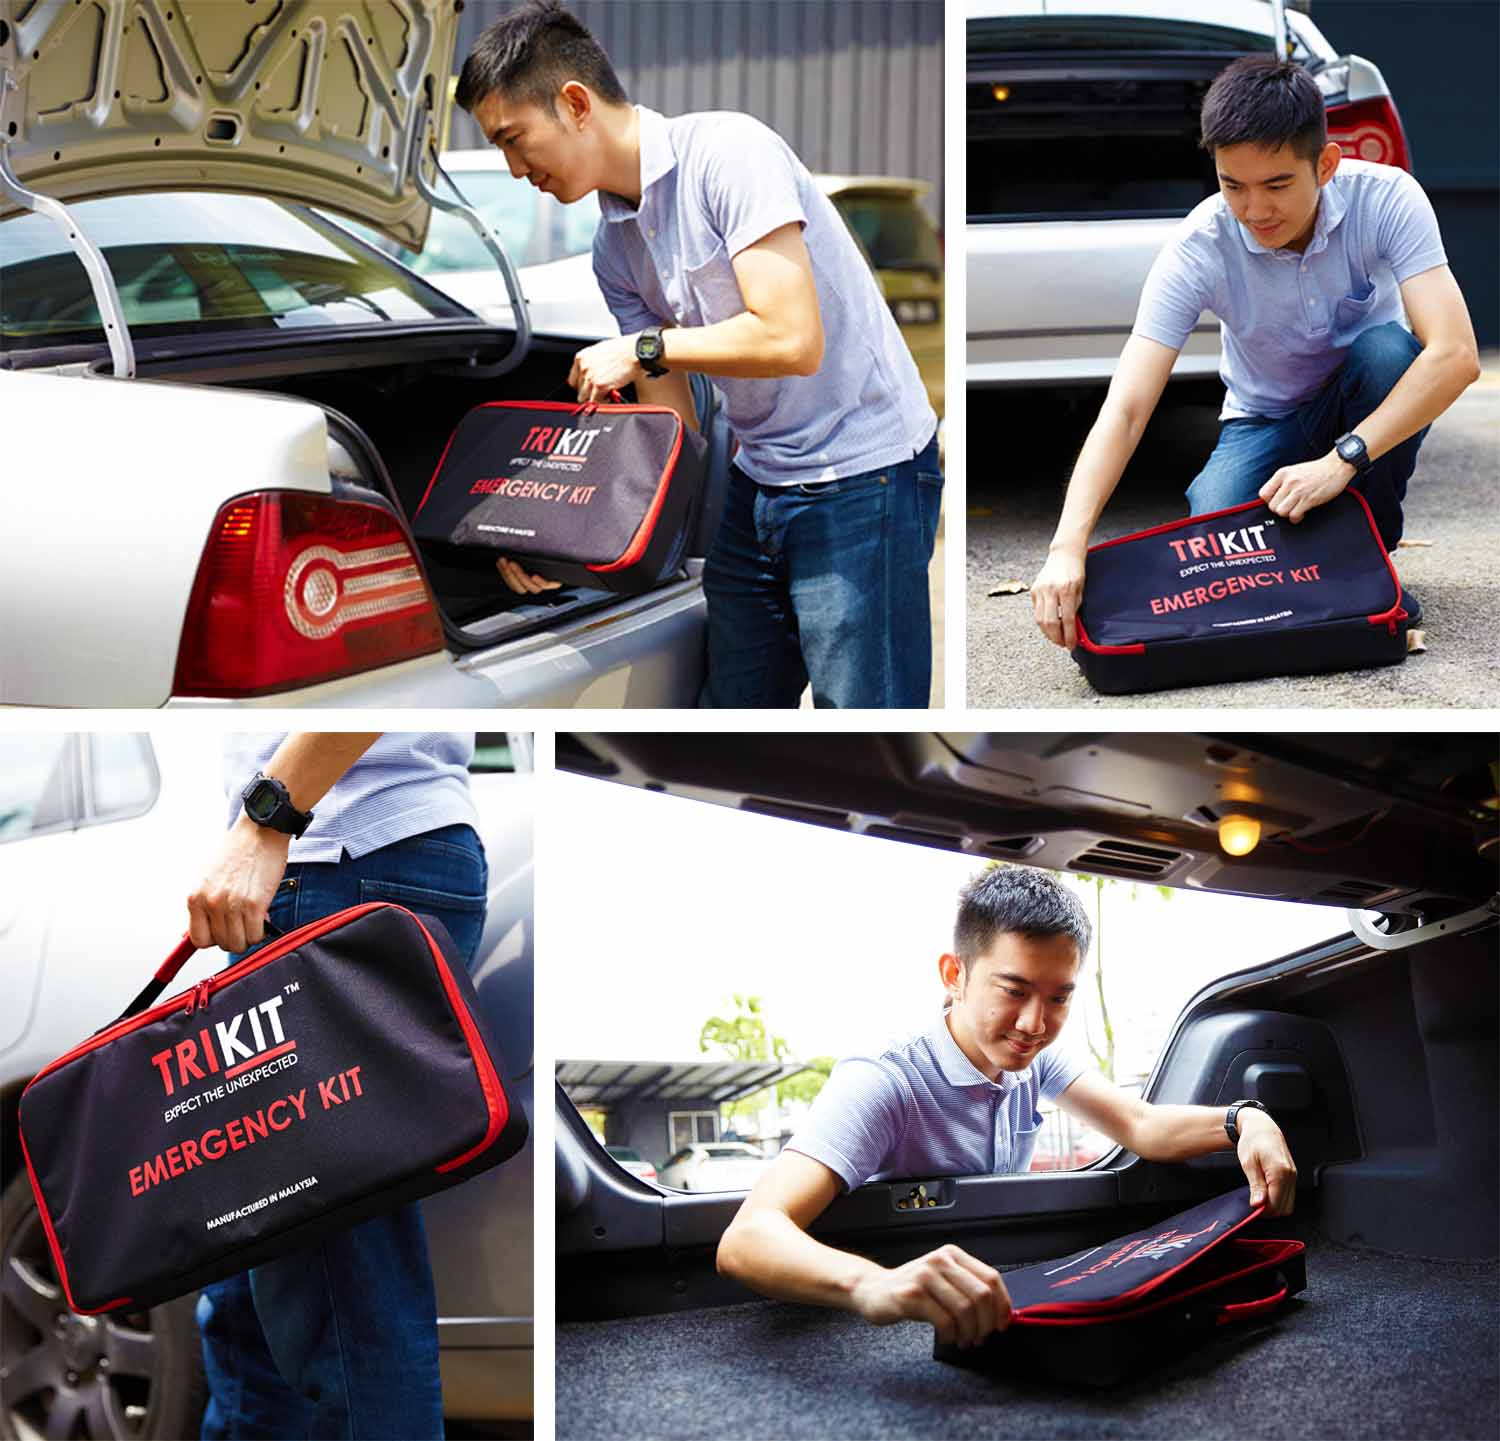 TRIKIT ANTI SLIP CAR KIT BAG